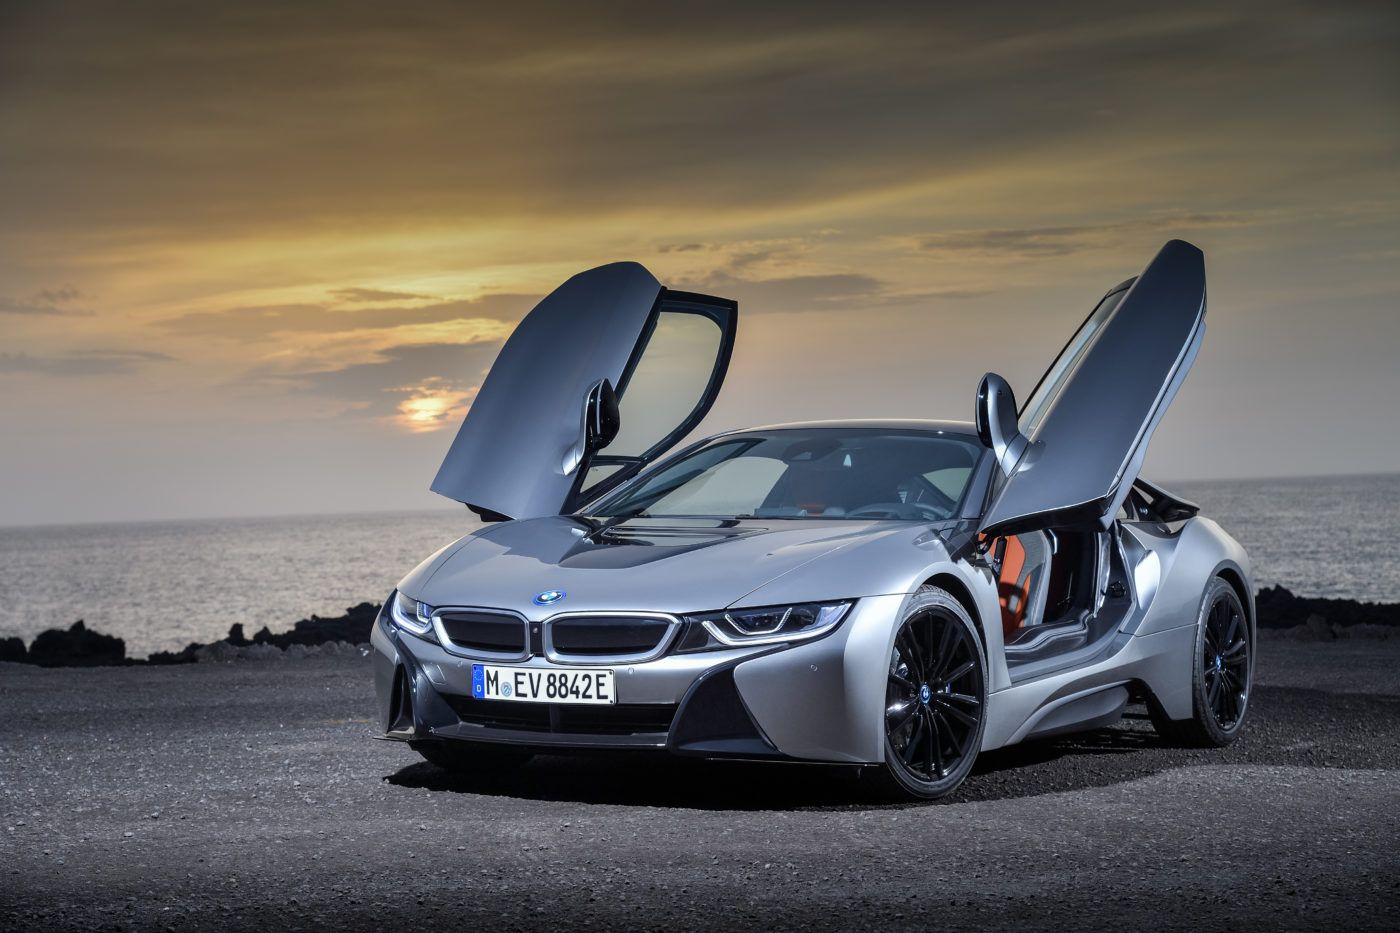 New 2019 Bmw I8 Roadster And Coupe Revealed With Images Bmw